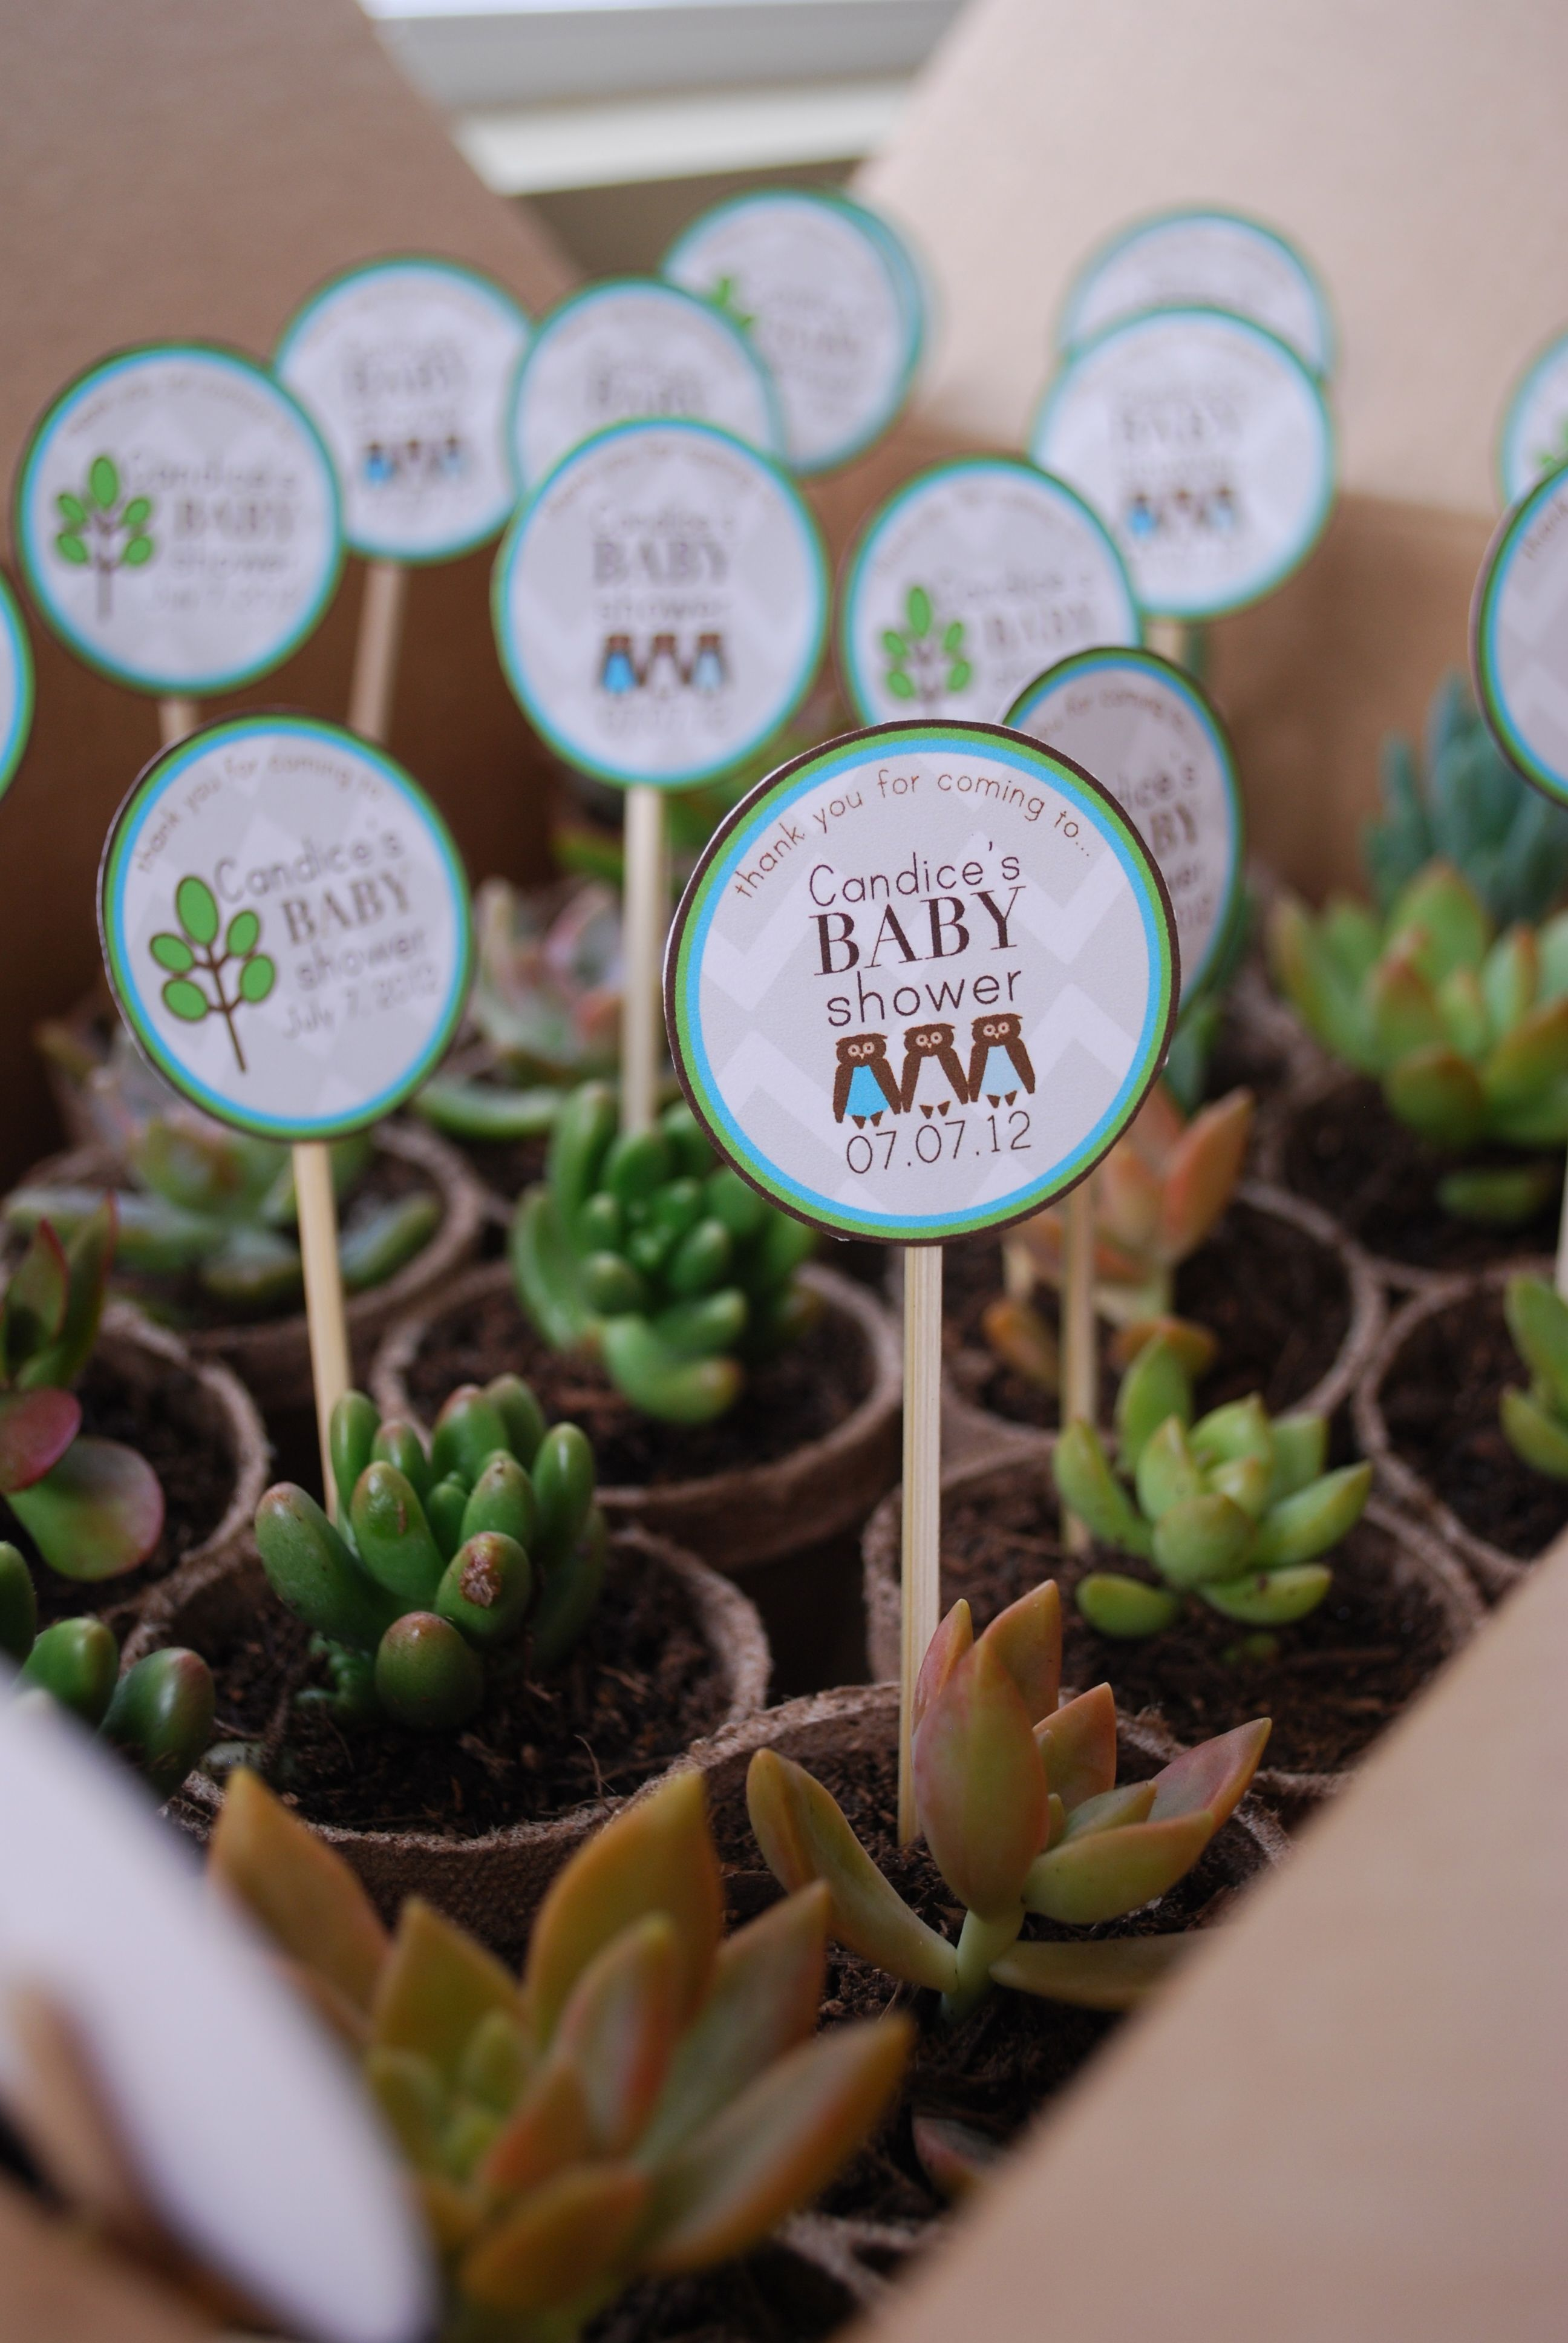 succulent wedding favors A succulent shower favor These favors were SO cute and so simple to put together